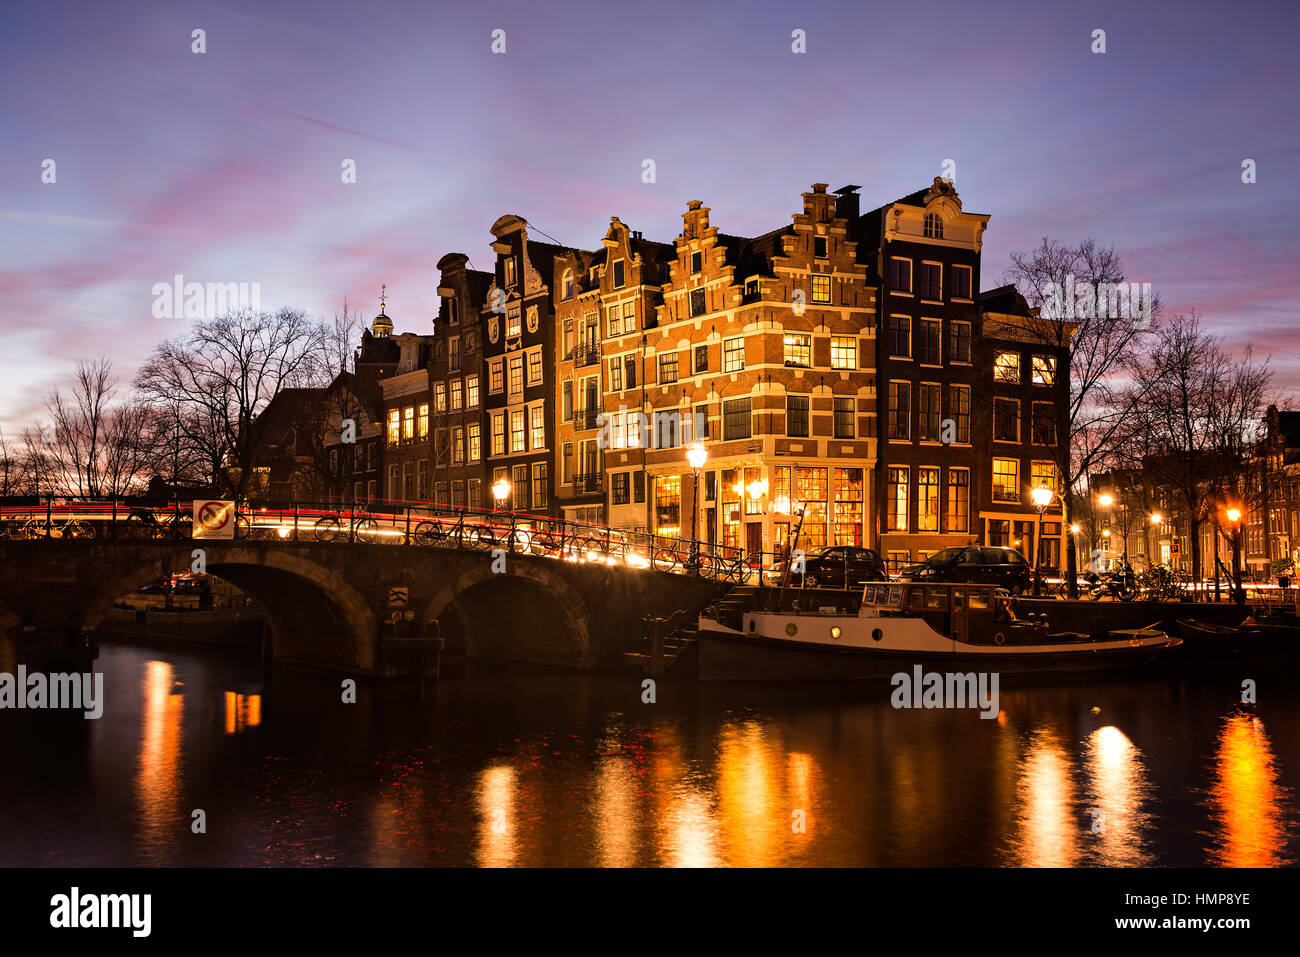 Amsterdam canal houses in traditional style next to a bridge over Prinsengracht en Brouwersgracht canals illuminated Stock Photo